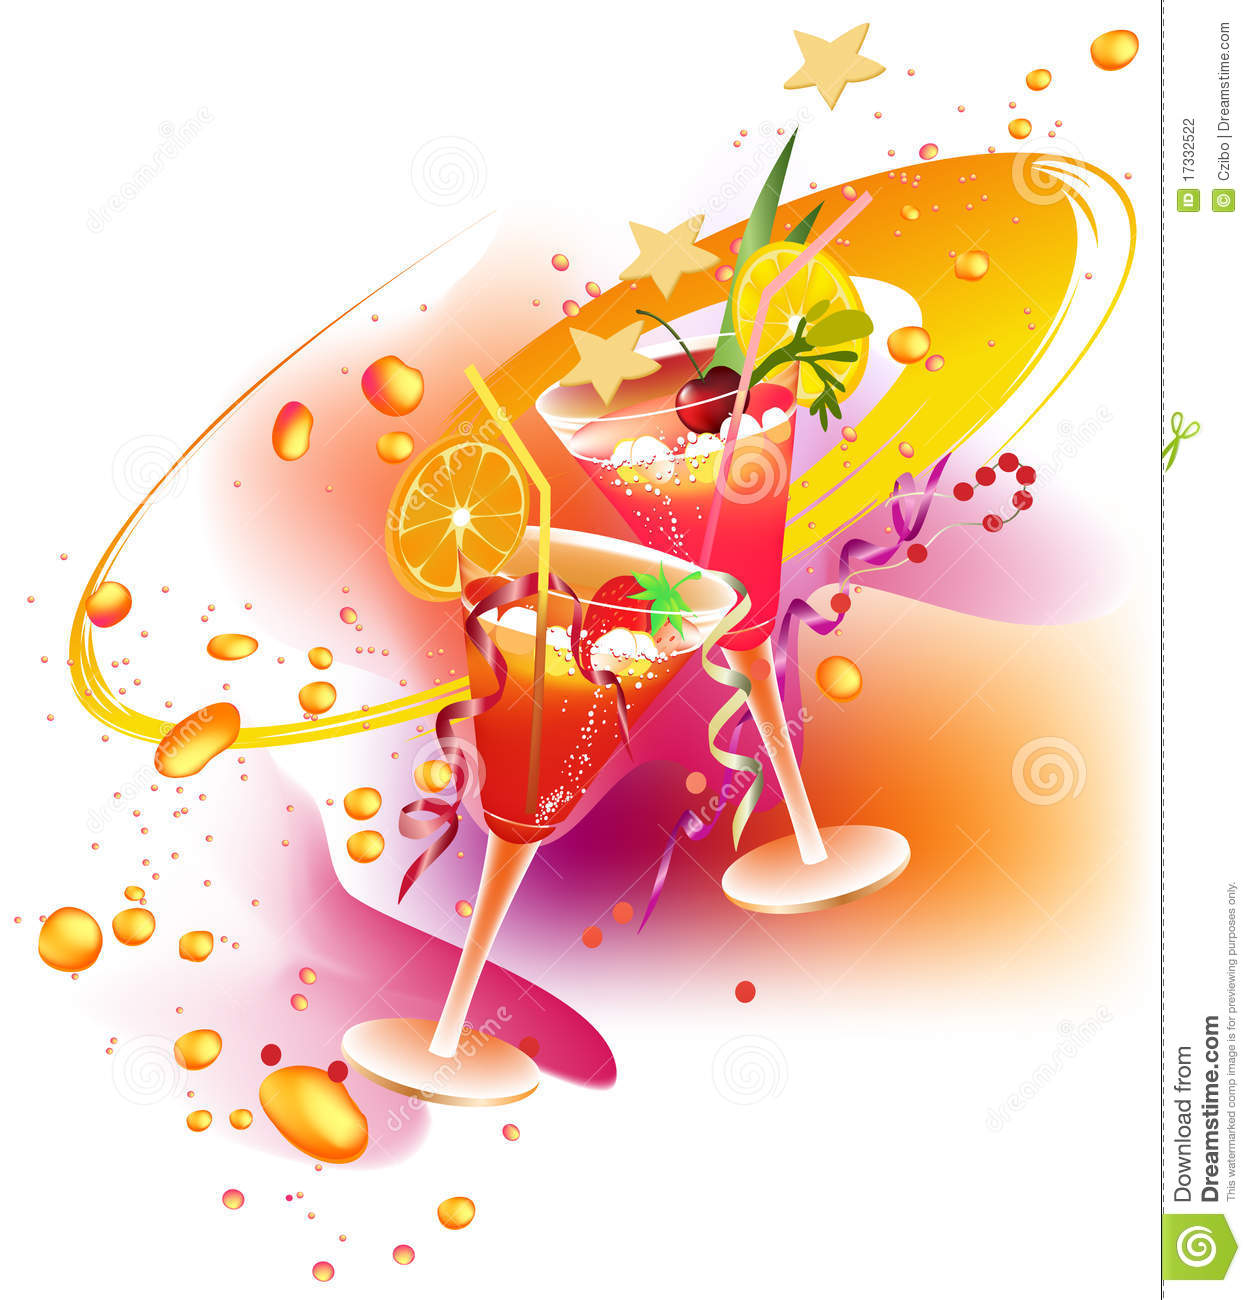 Party\'s drinks stock vector. Illustration of illustration - 17332522